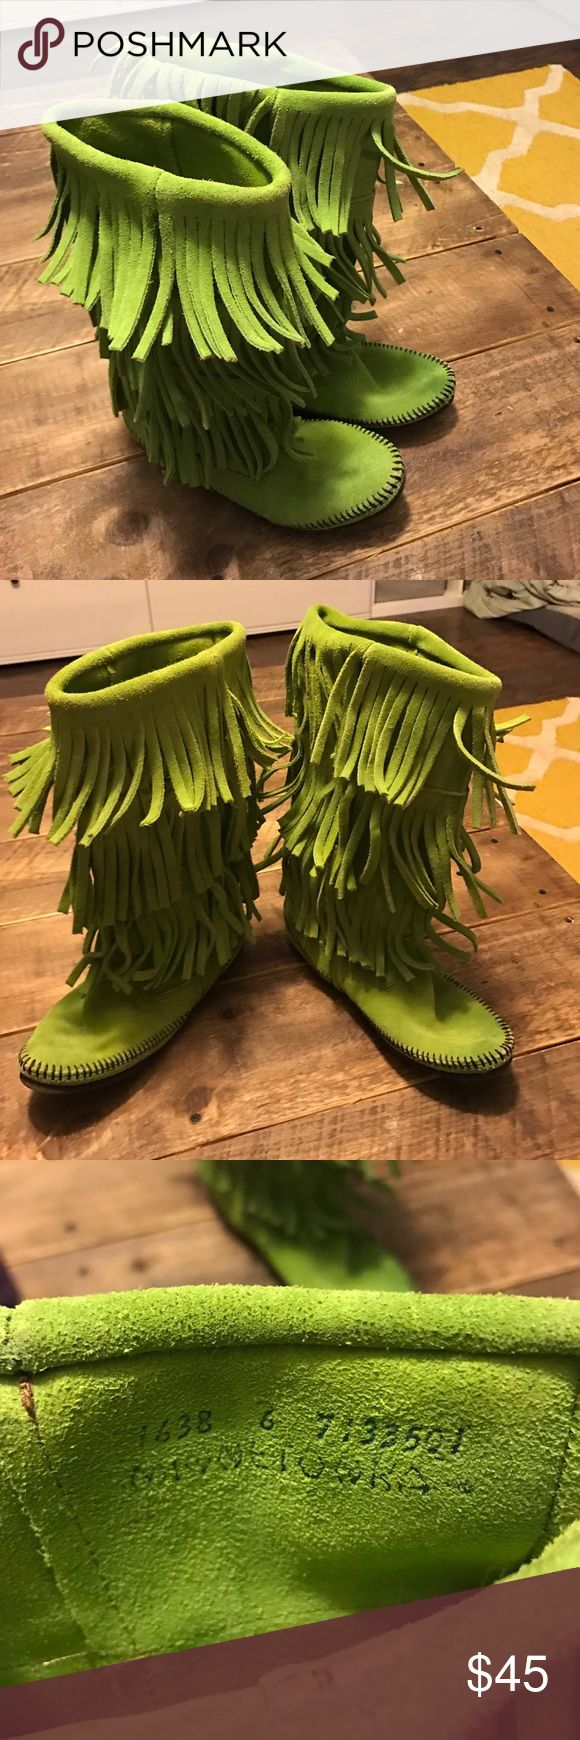 Minnetonka green boots Never worn. Size 6 Minnetonka Shoes Moccasins